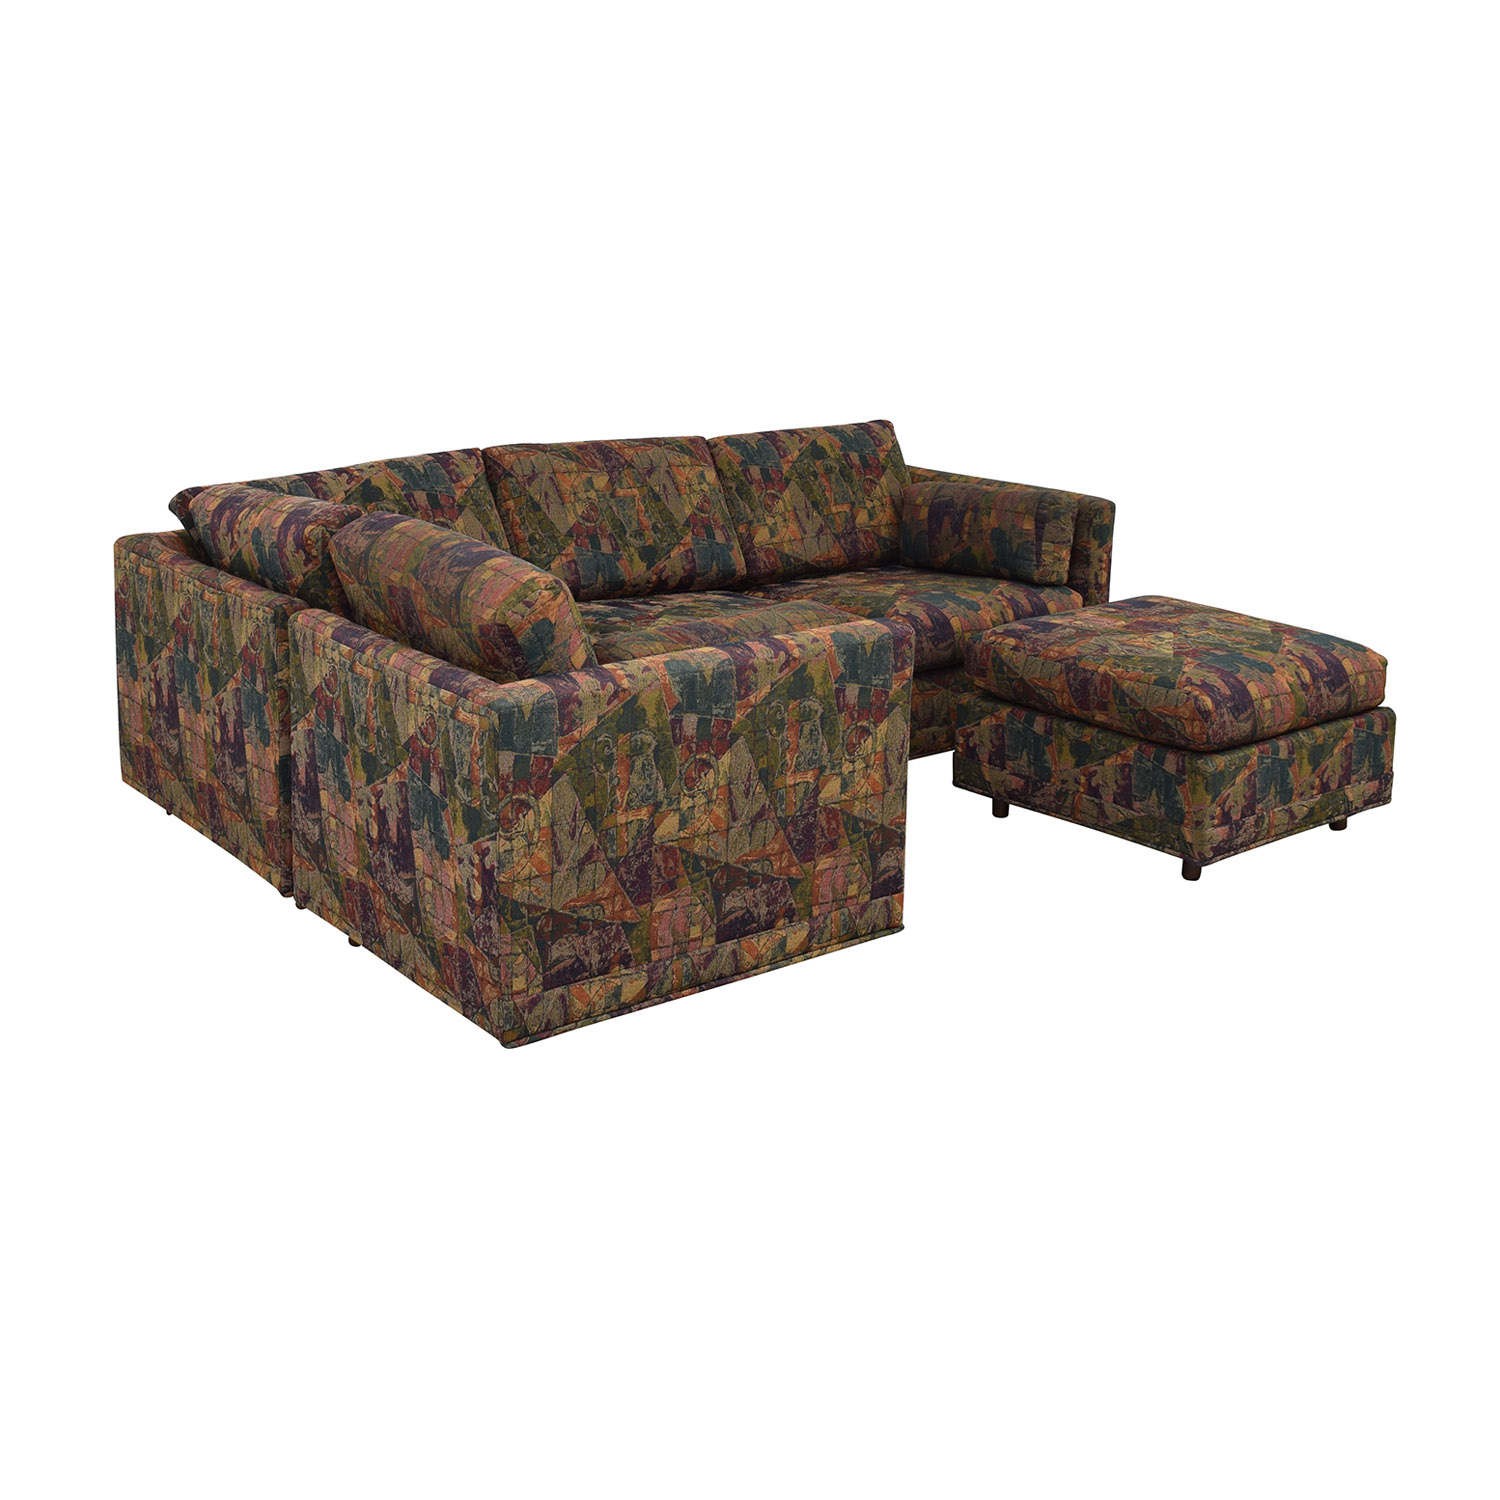 buy  Multi-Colored Sectional With Ottoman online